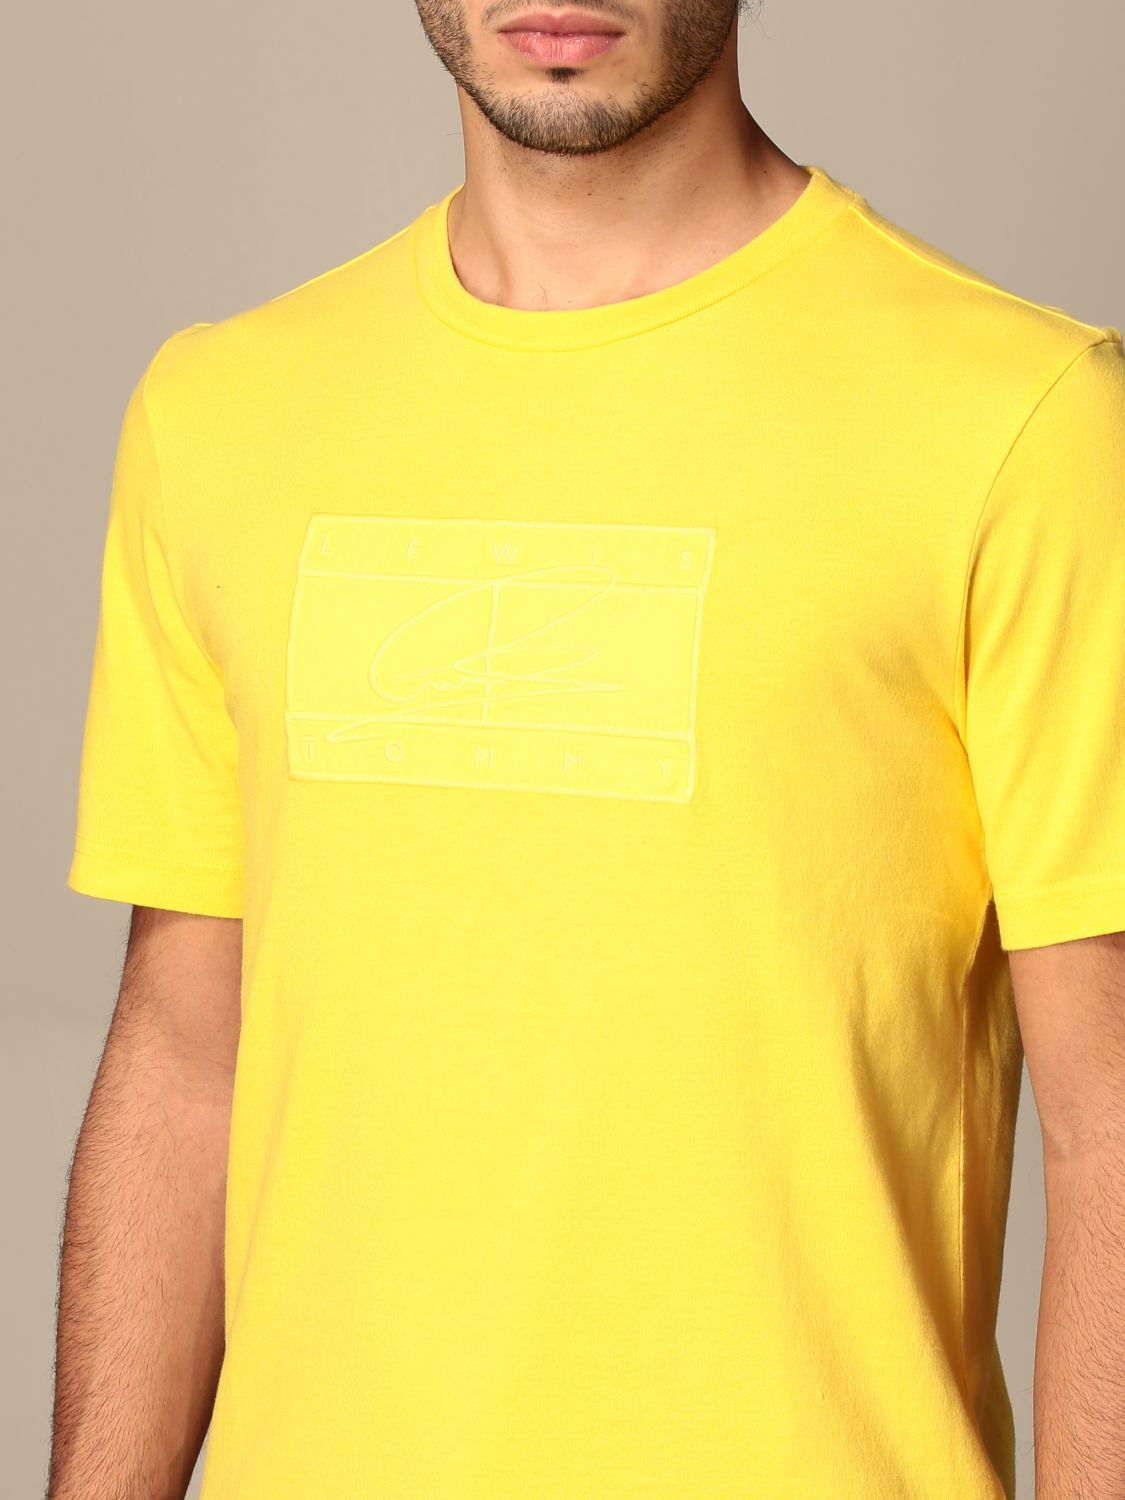 T-shirt Hilfiger Collection: Lewis Hamilton relaxed fit cotton T-shirt yellow 4